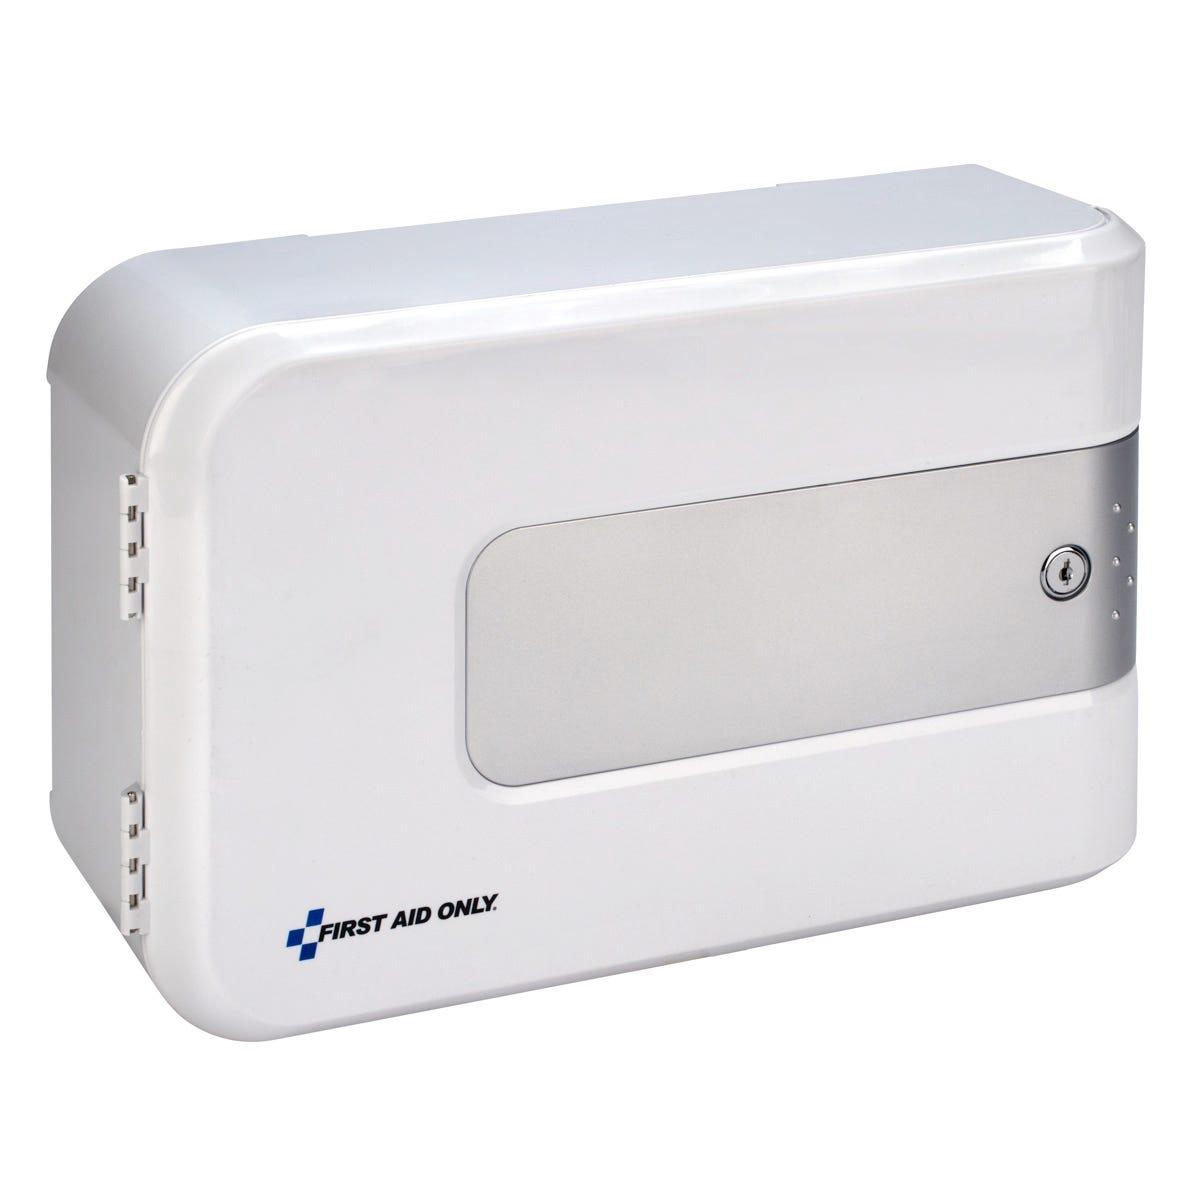 First Aid Only SmartCompliance Complete Empty Lockable Station